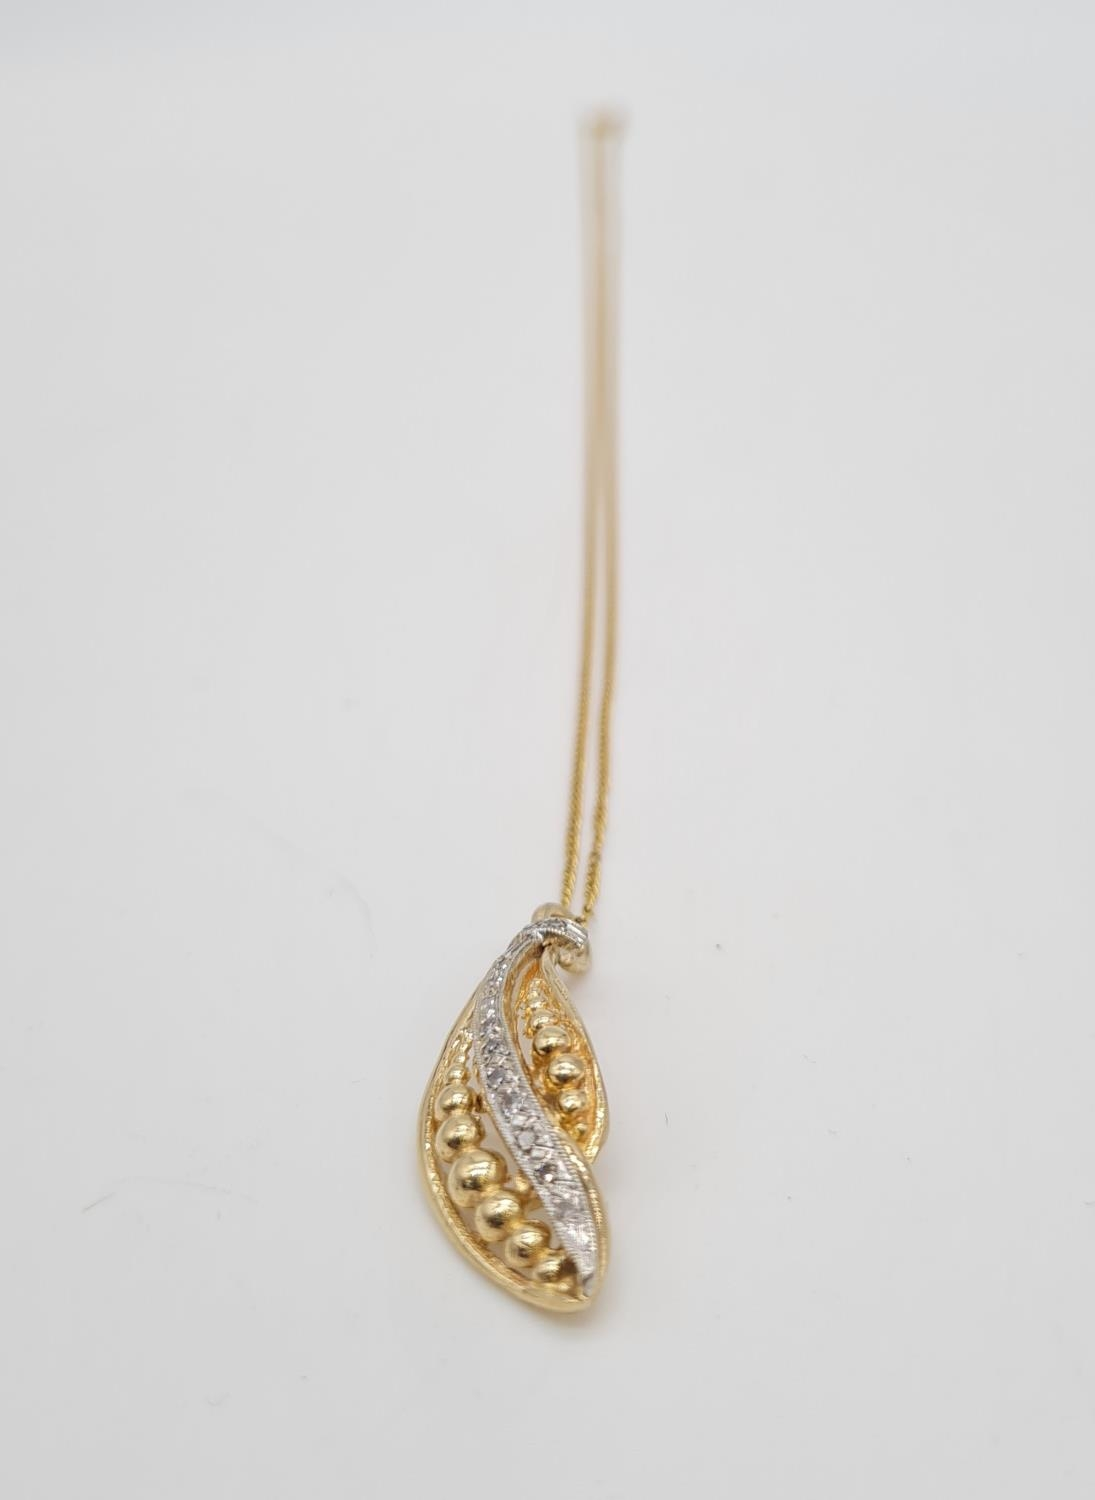 18ct gold diamond set pendant on chain, weight 3.69g and 40cm long, pendant 3 x 1cm - Image 6 of 9